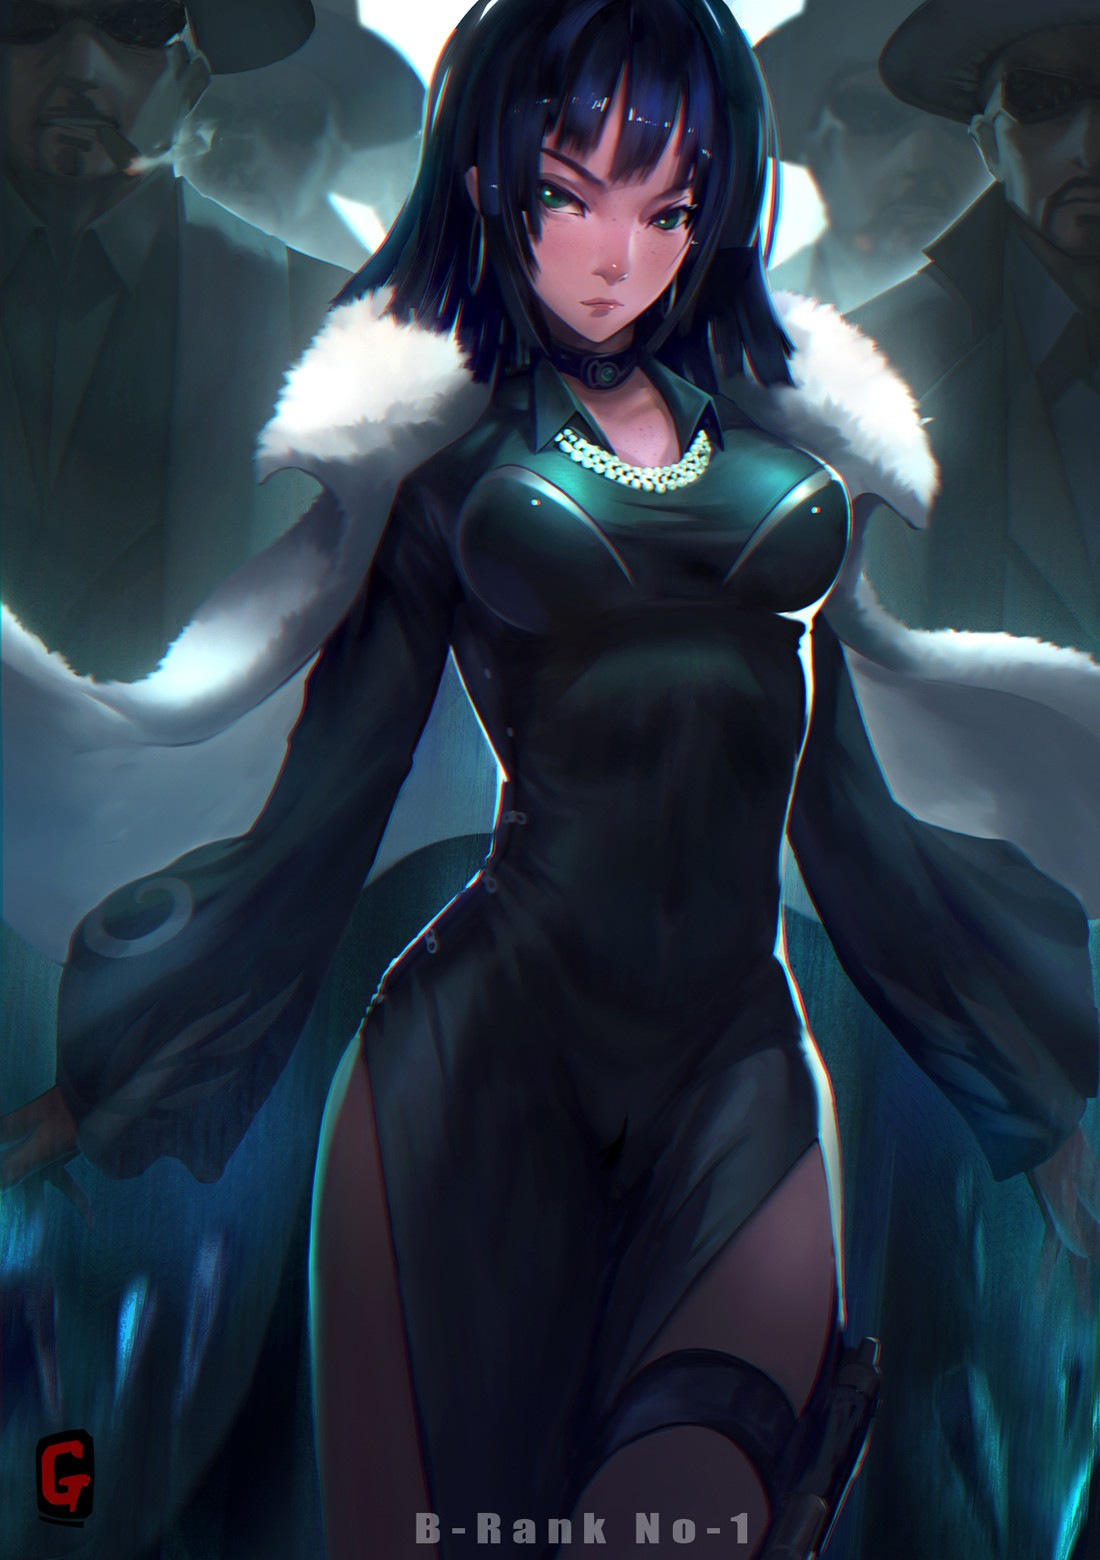 Anime 1100x1560 boobs short hair legs dress violet hair necklace pearl necklace pistol One-Punch Man Fubuki